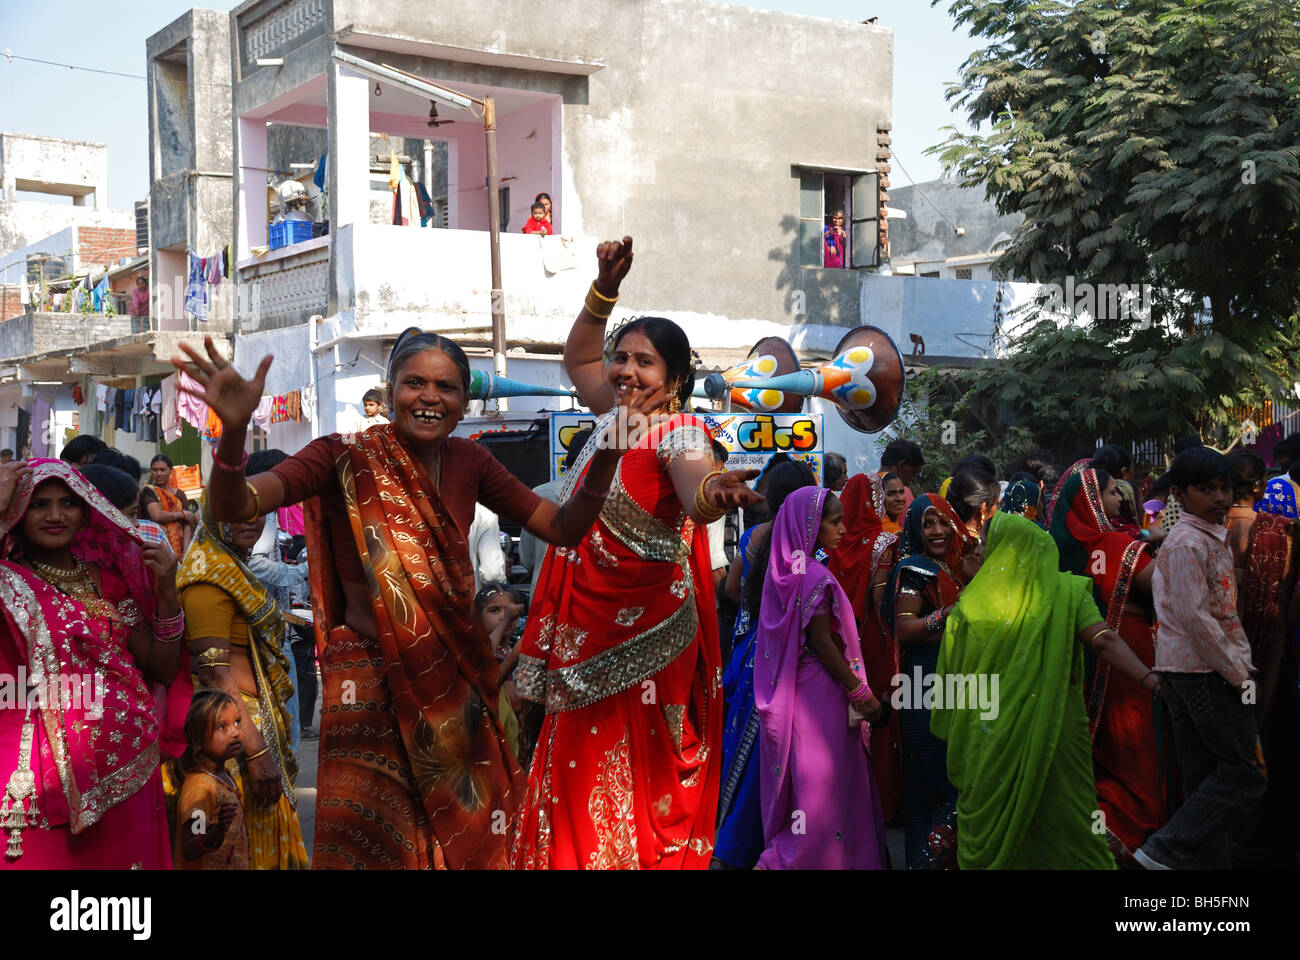 Wedding procession in the street in Ahmedabad, Gujarat, India. - Stock Image